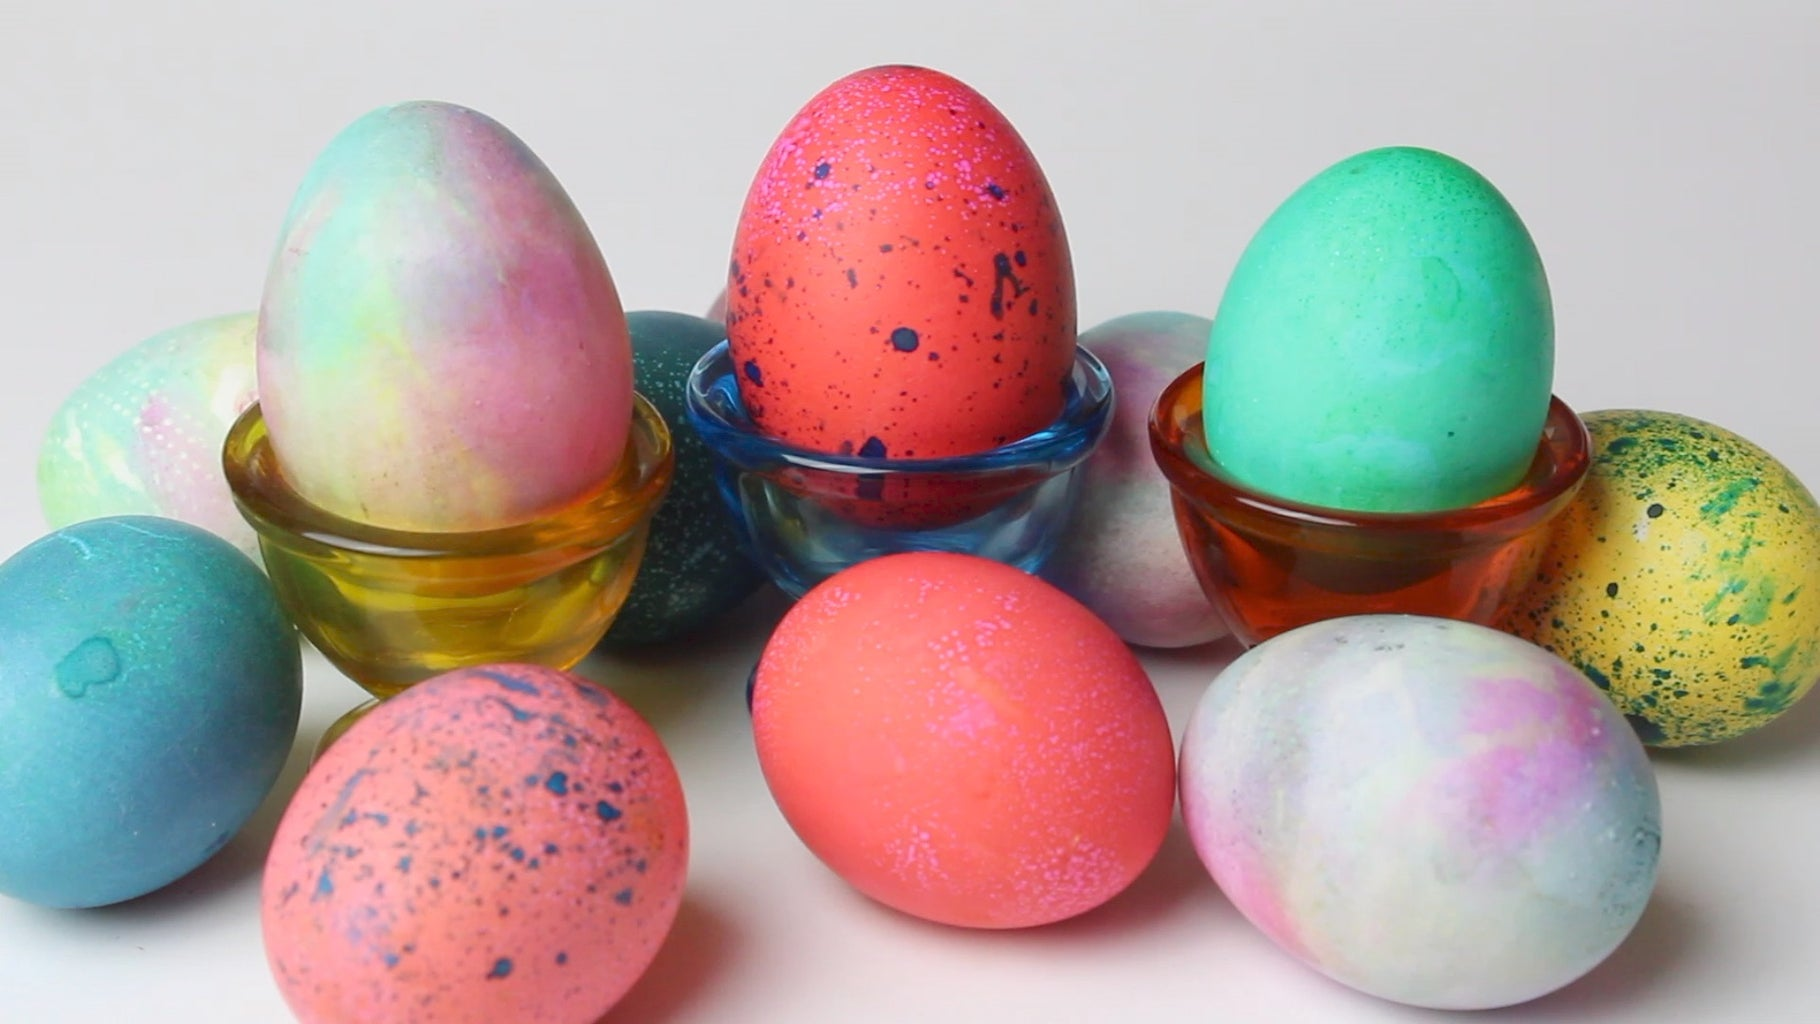 How Are You Going to Dye Your Eggs?